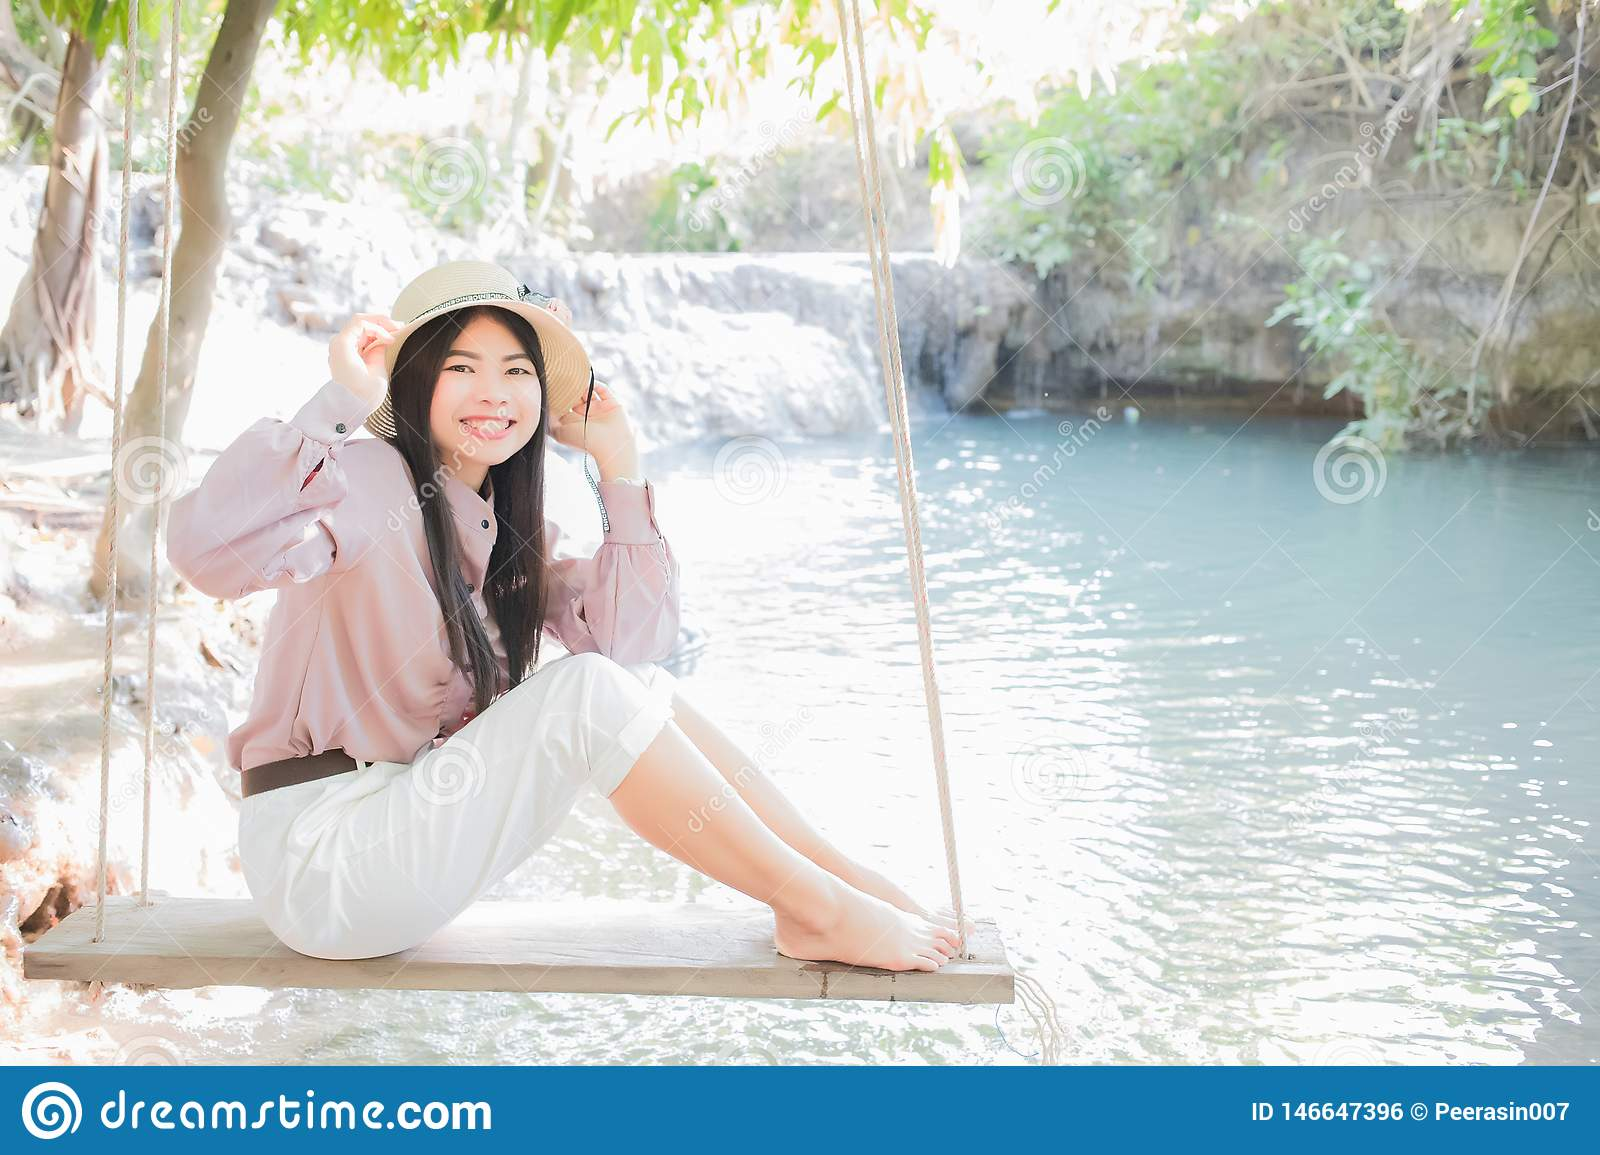 Beautiful Asian women, Thai people, wearing pink casual clothes with a refreshing and smiling face are sitting on the swings.